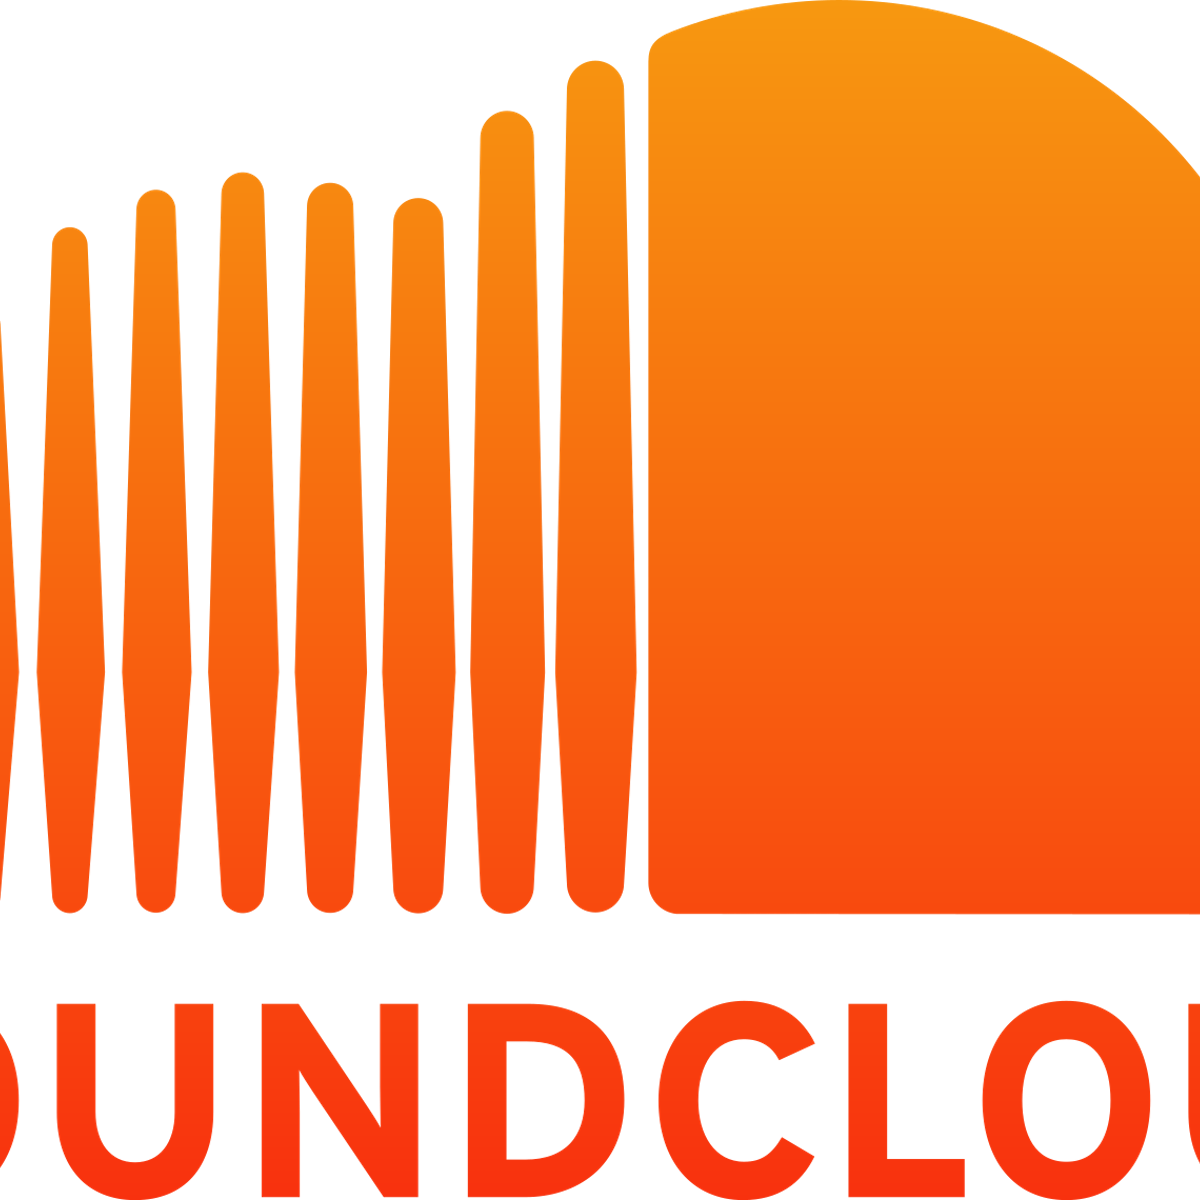 releasing music on soundcloud